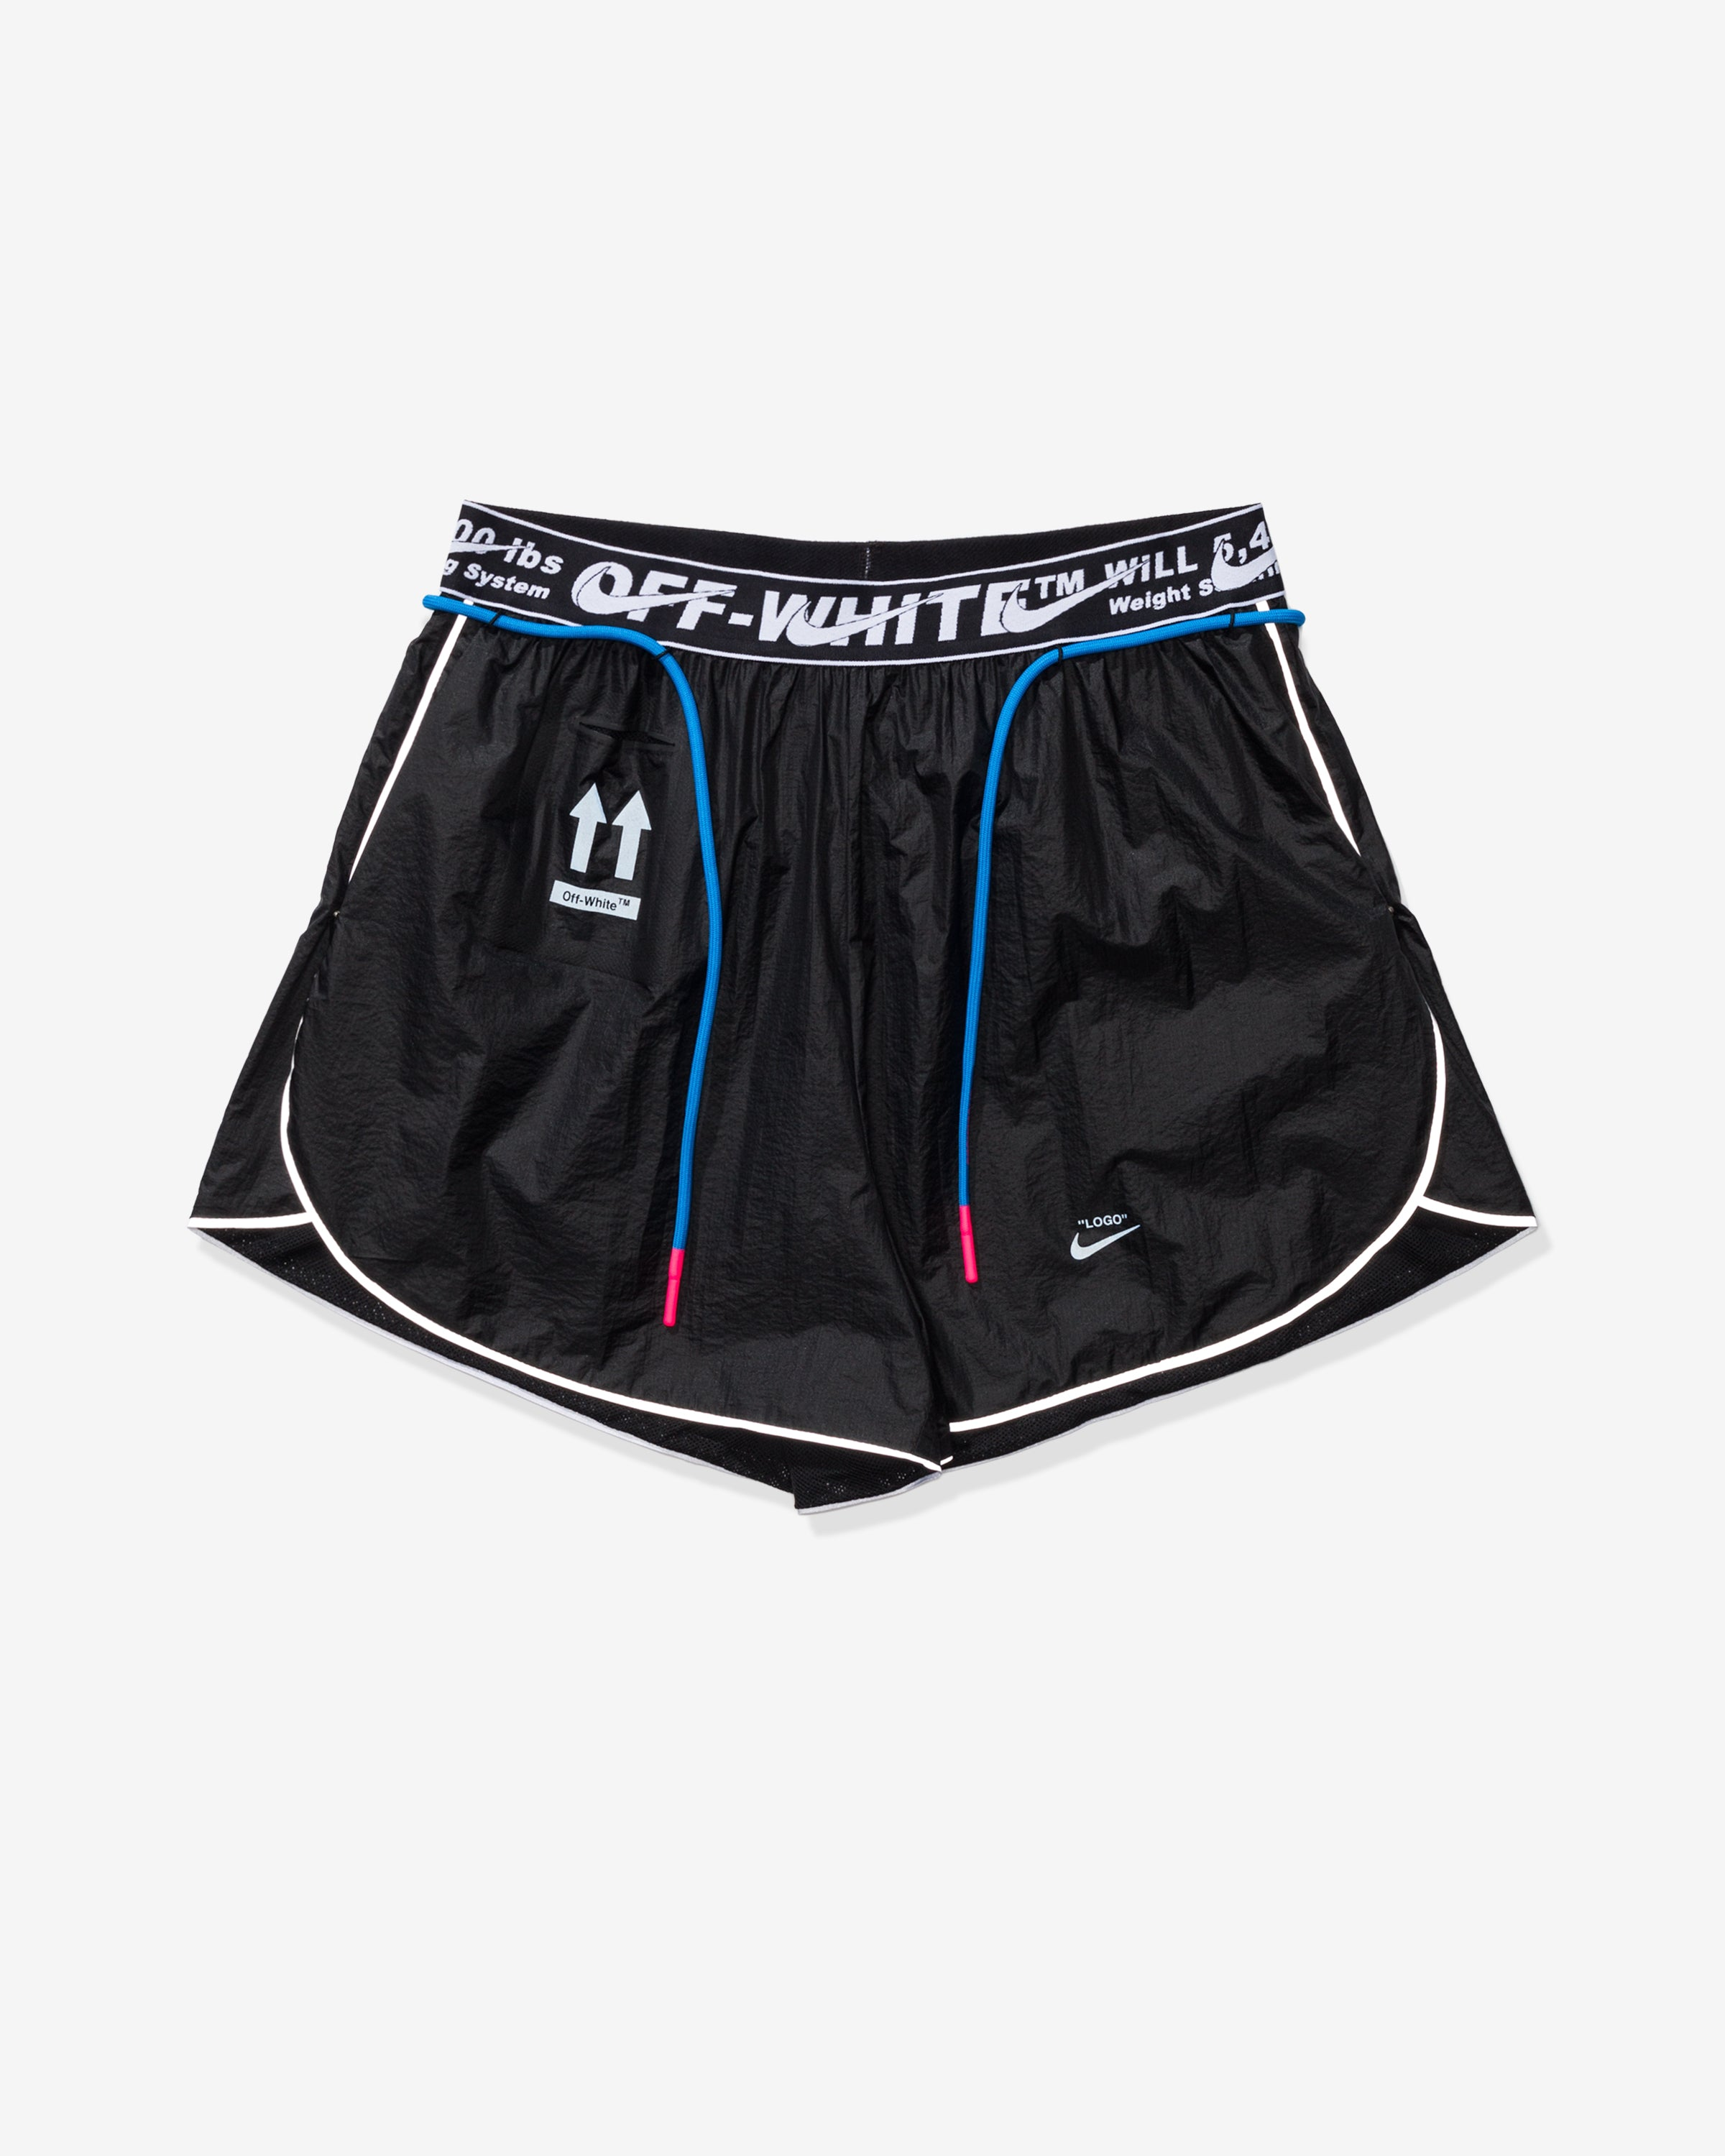 NIKE X OFF-WHITE WOMEN'S NRG SHORT #23 - BLACK